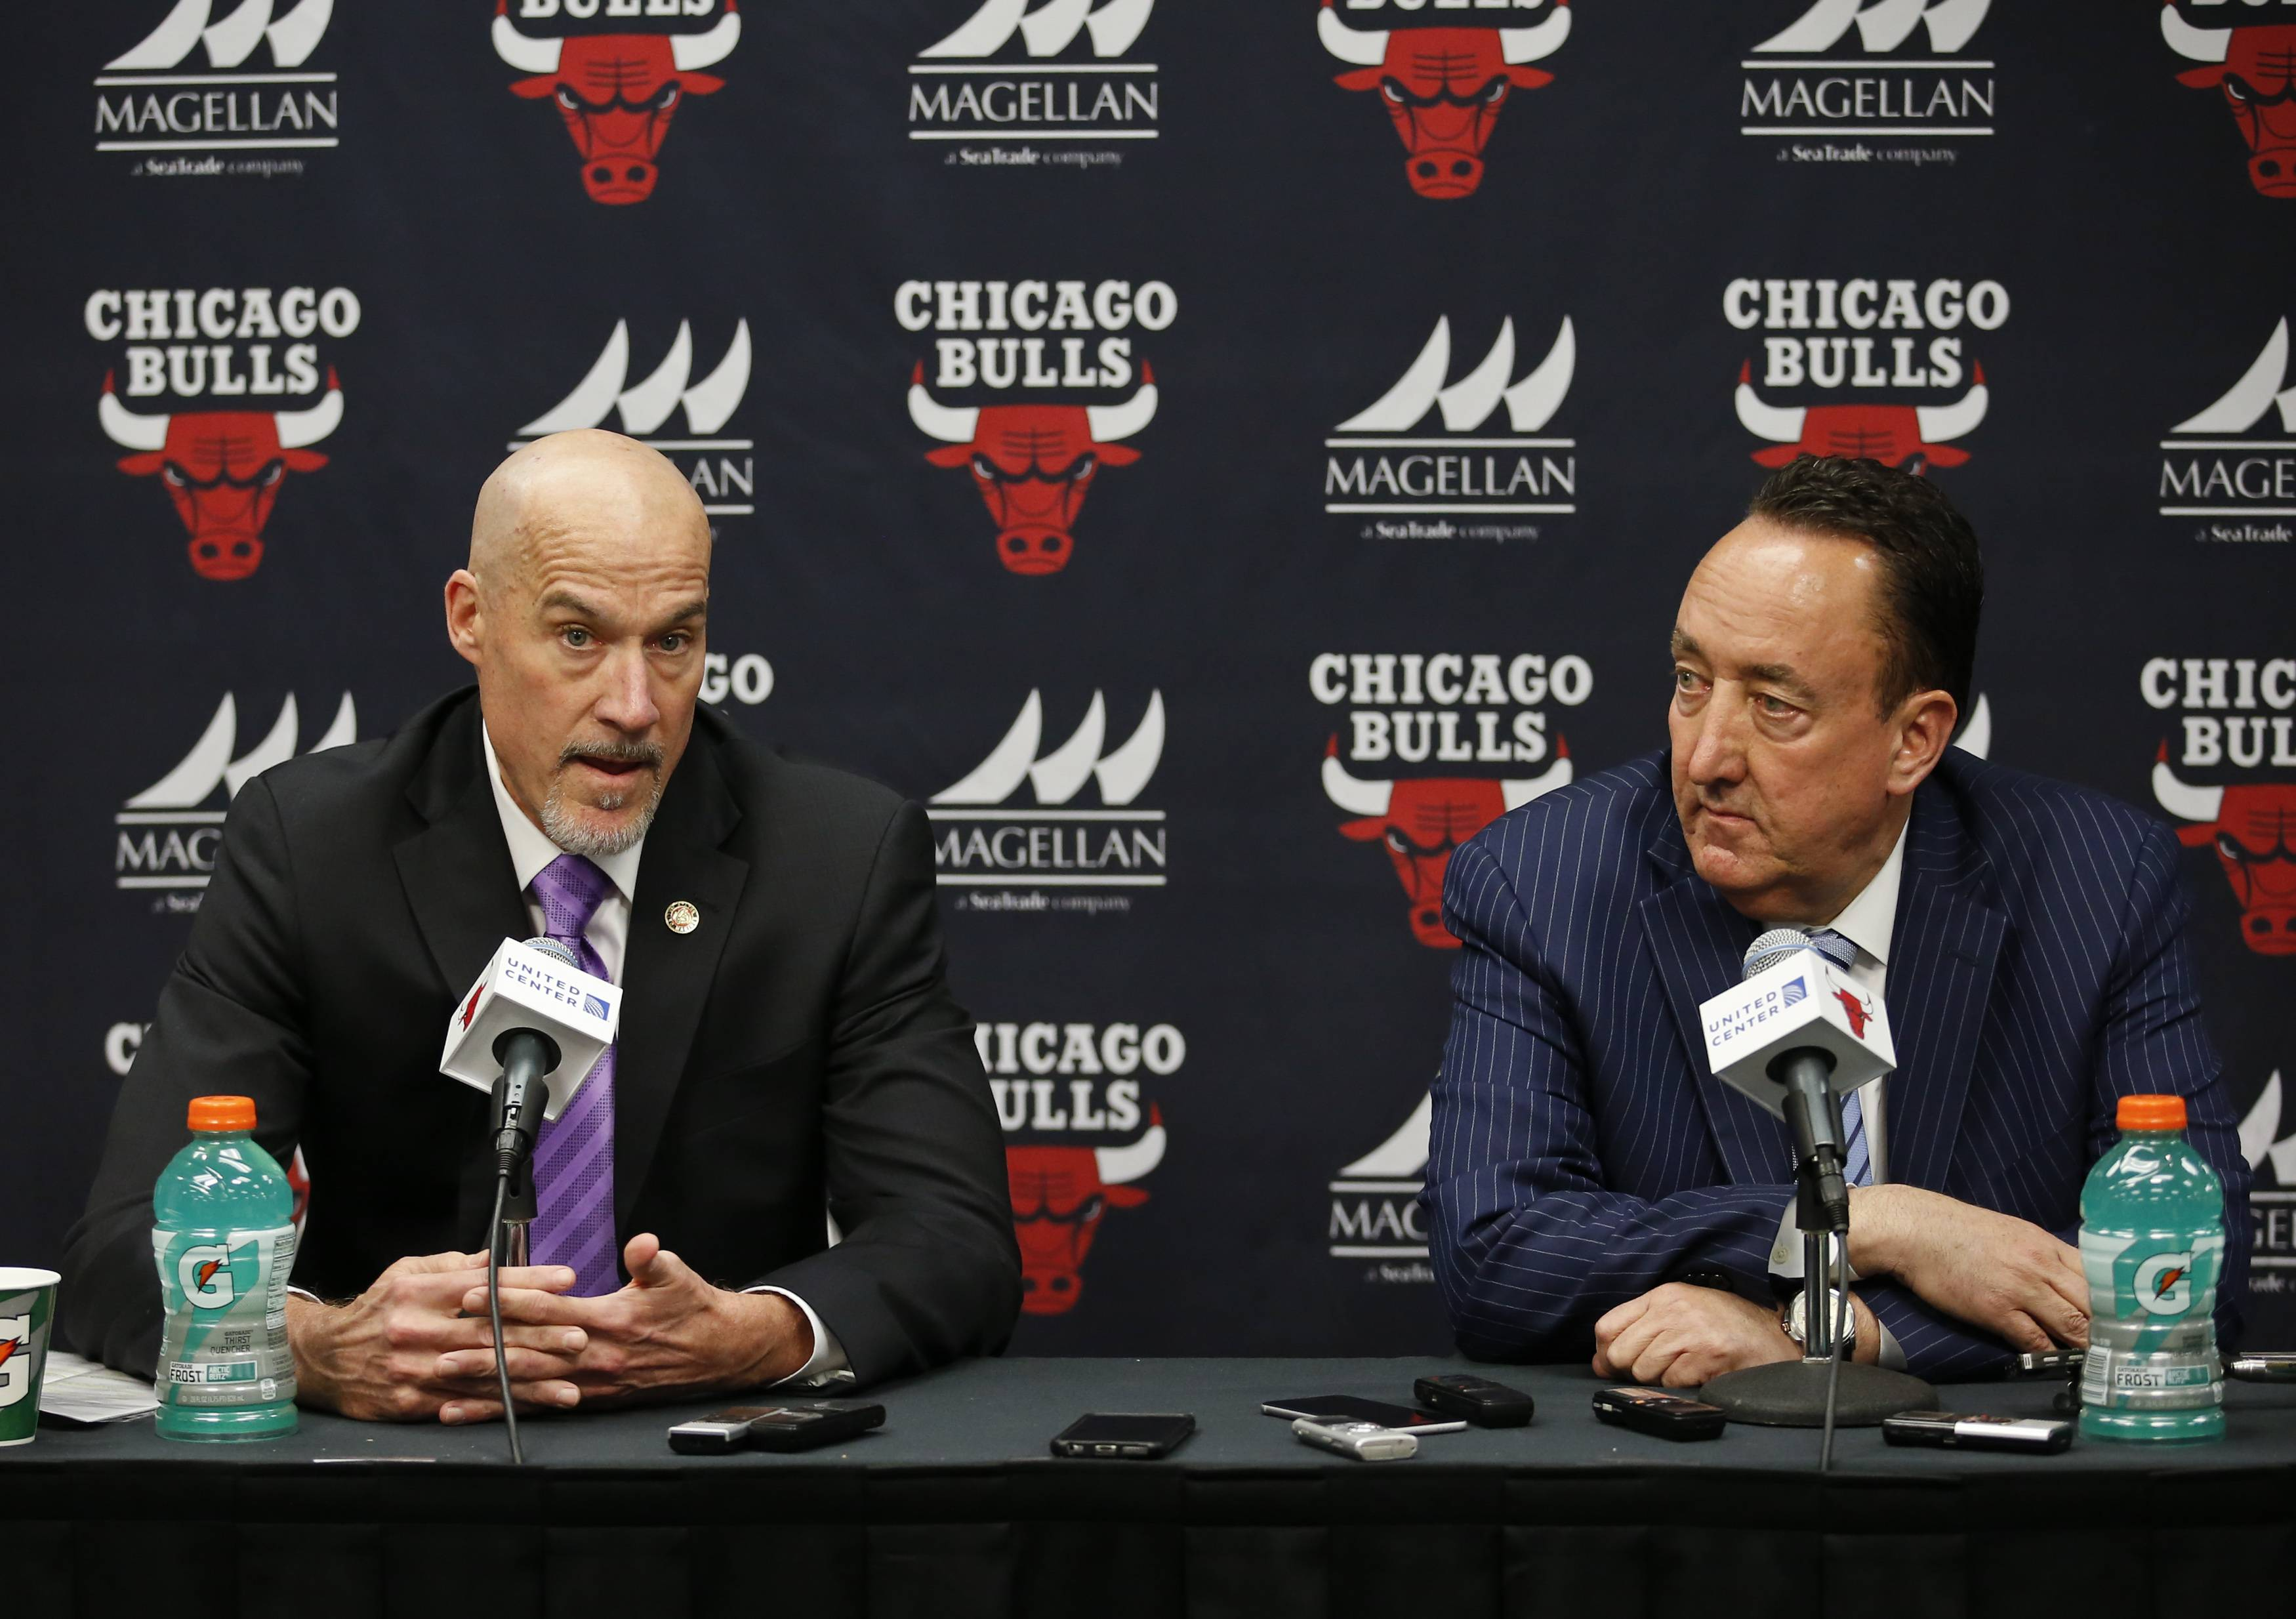 Imrem: Chicago Bulls not exactly an easy sell